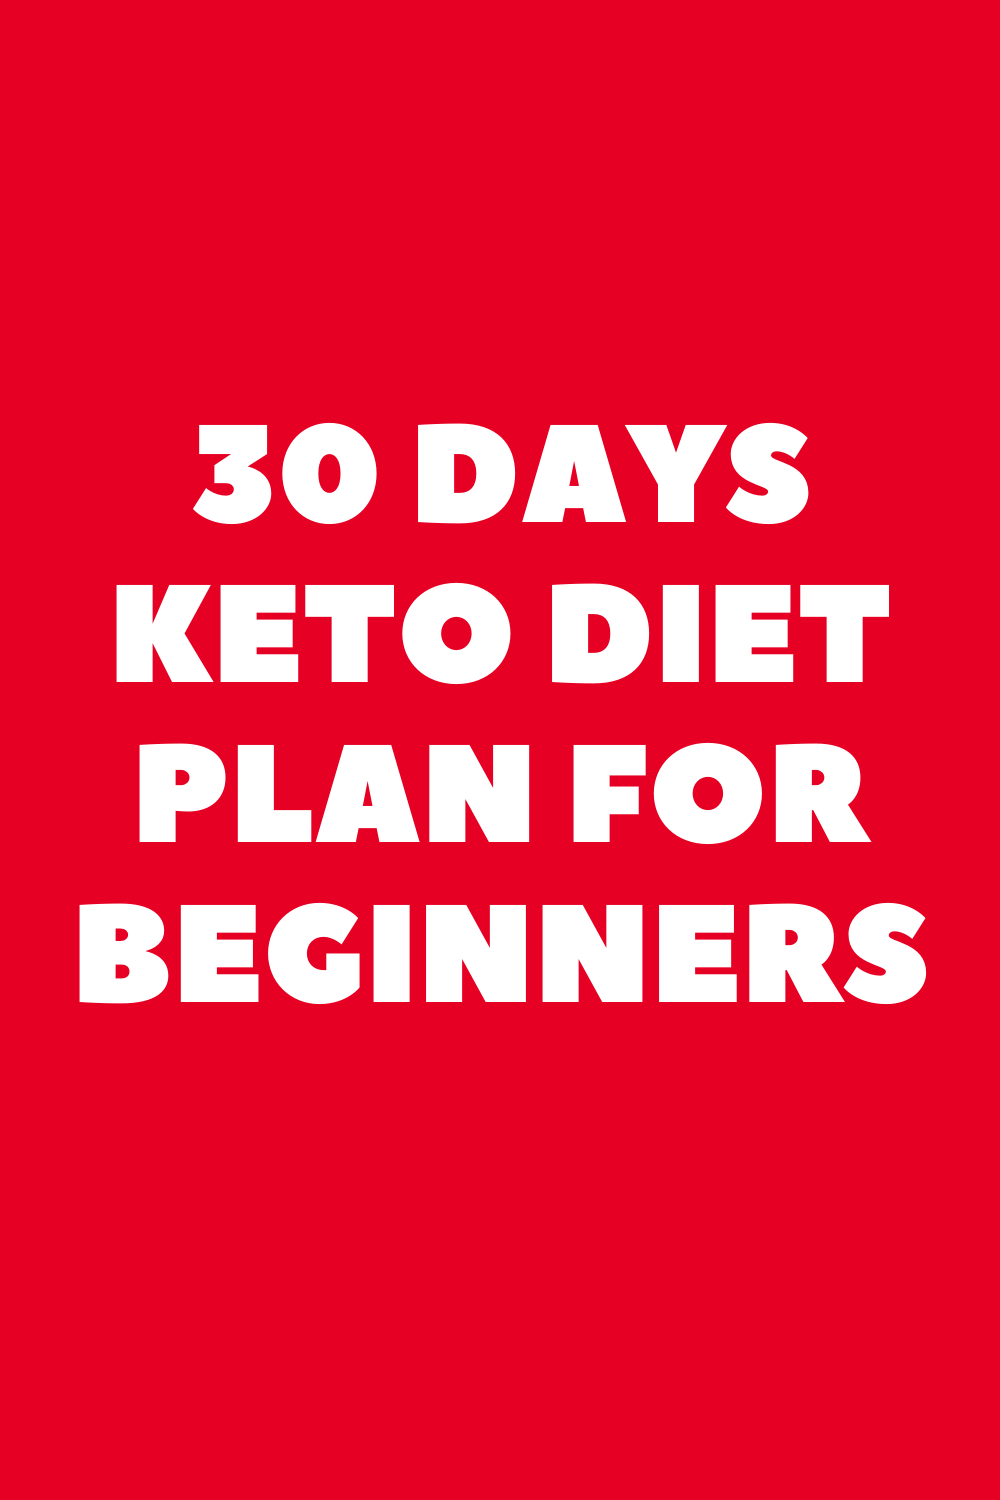 Best 30 Days Low Carb Diet Plan & Tips For Beginners You Will Read This Year | 1200 calories per day